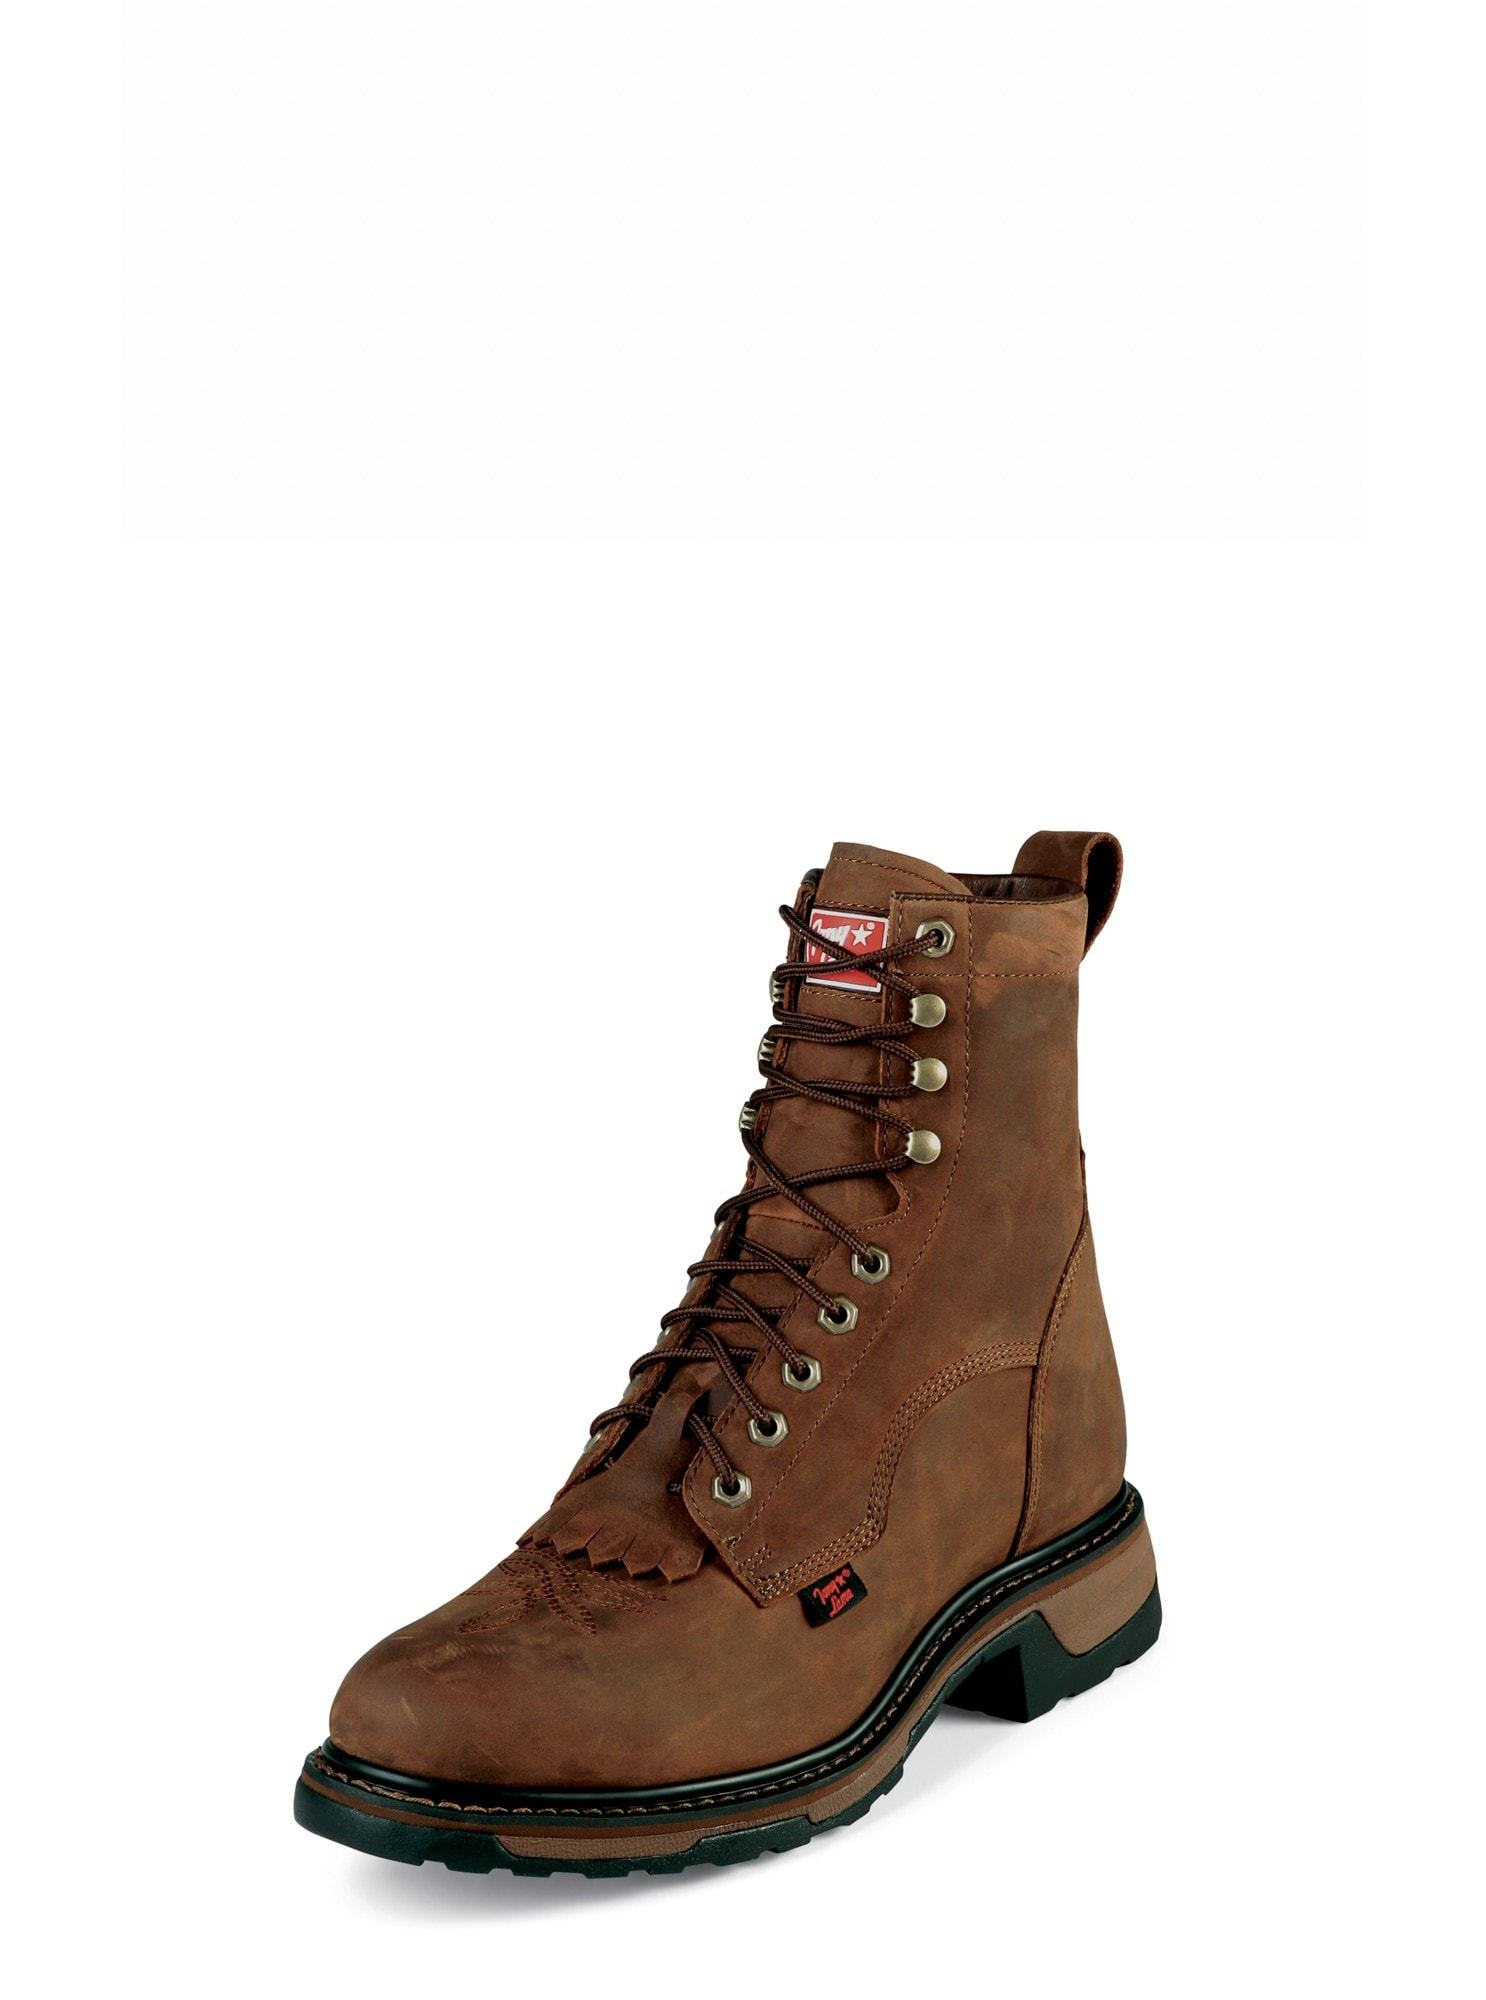 Tan Cheyenne Waterproof Steel Toe -